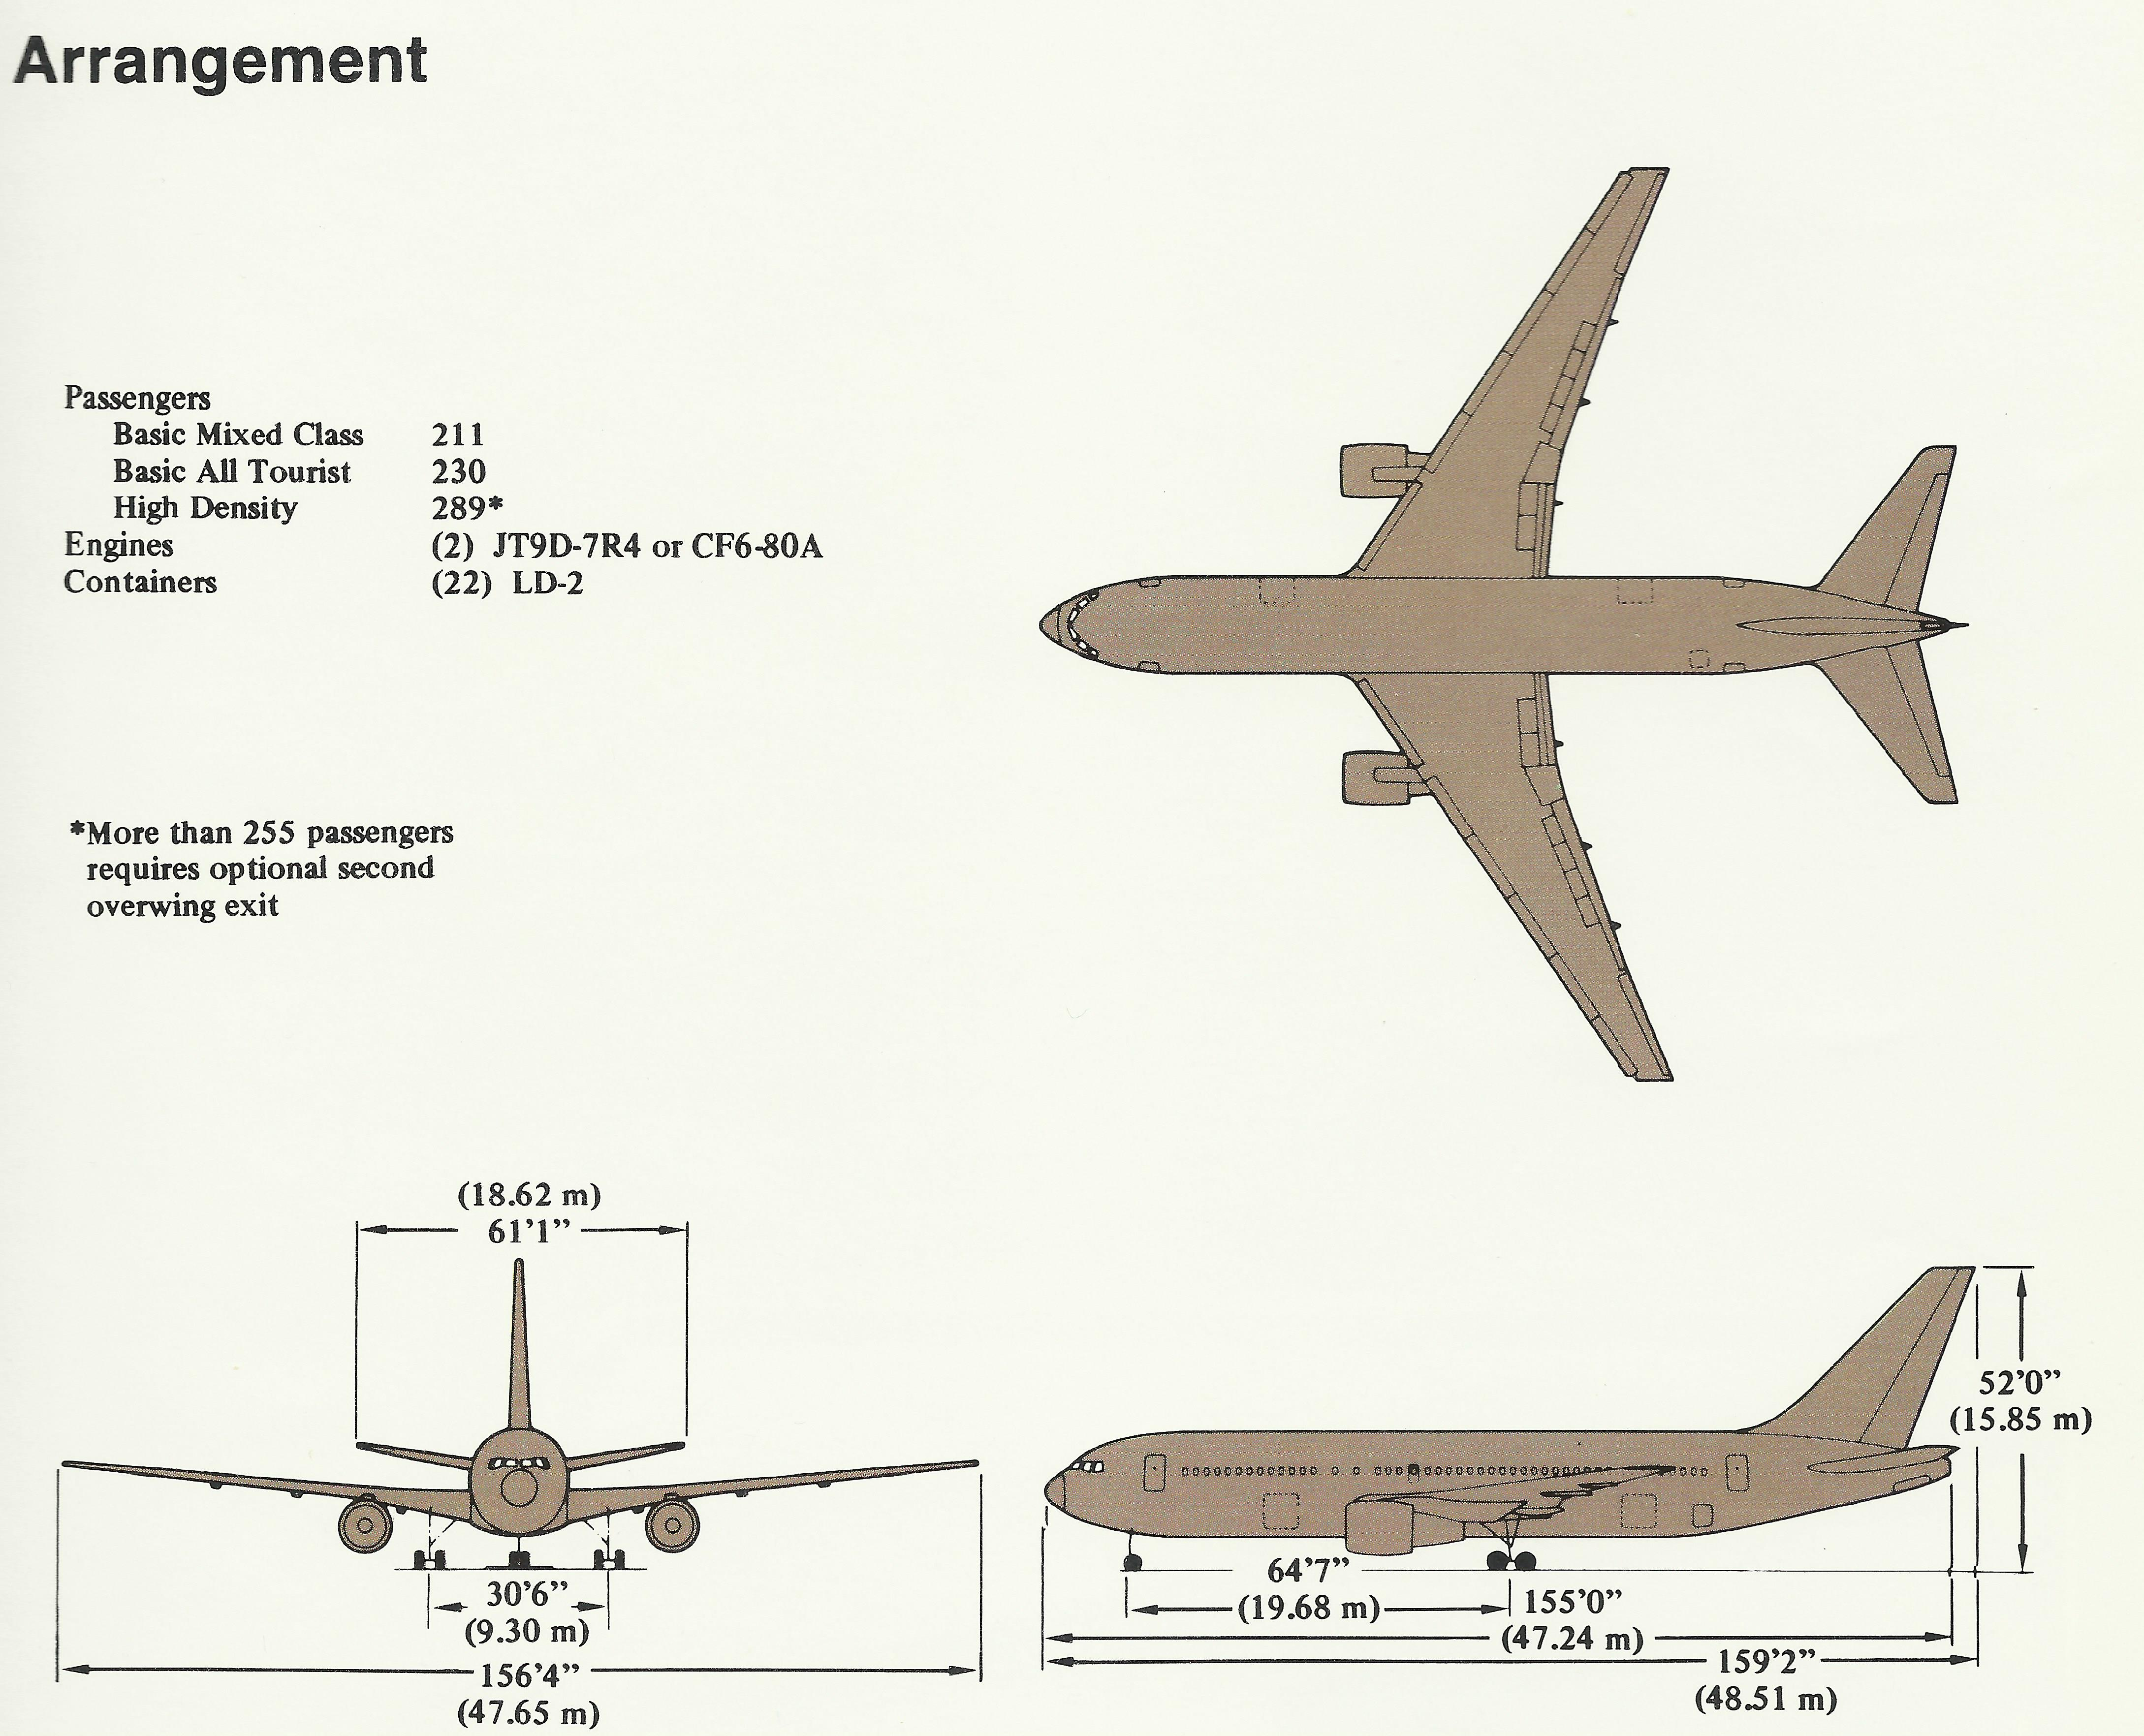 Cabin Blueprints Boeing 767 Modern Airliners